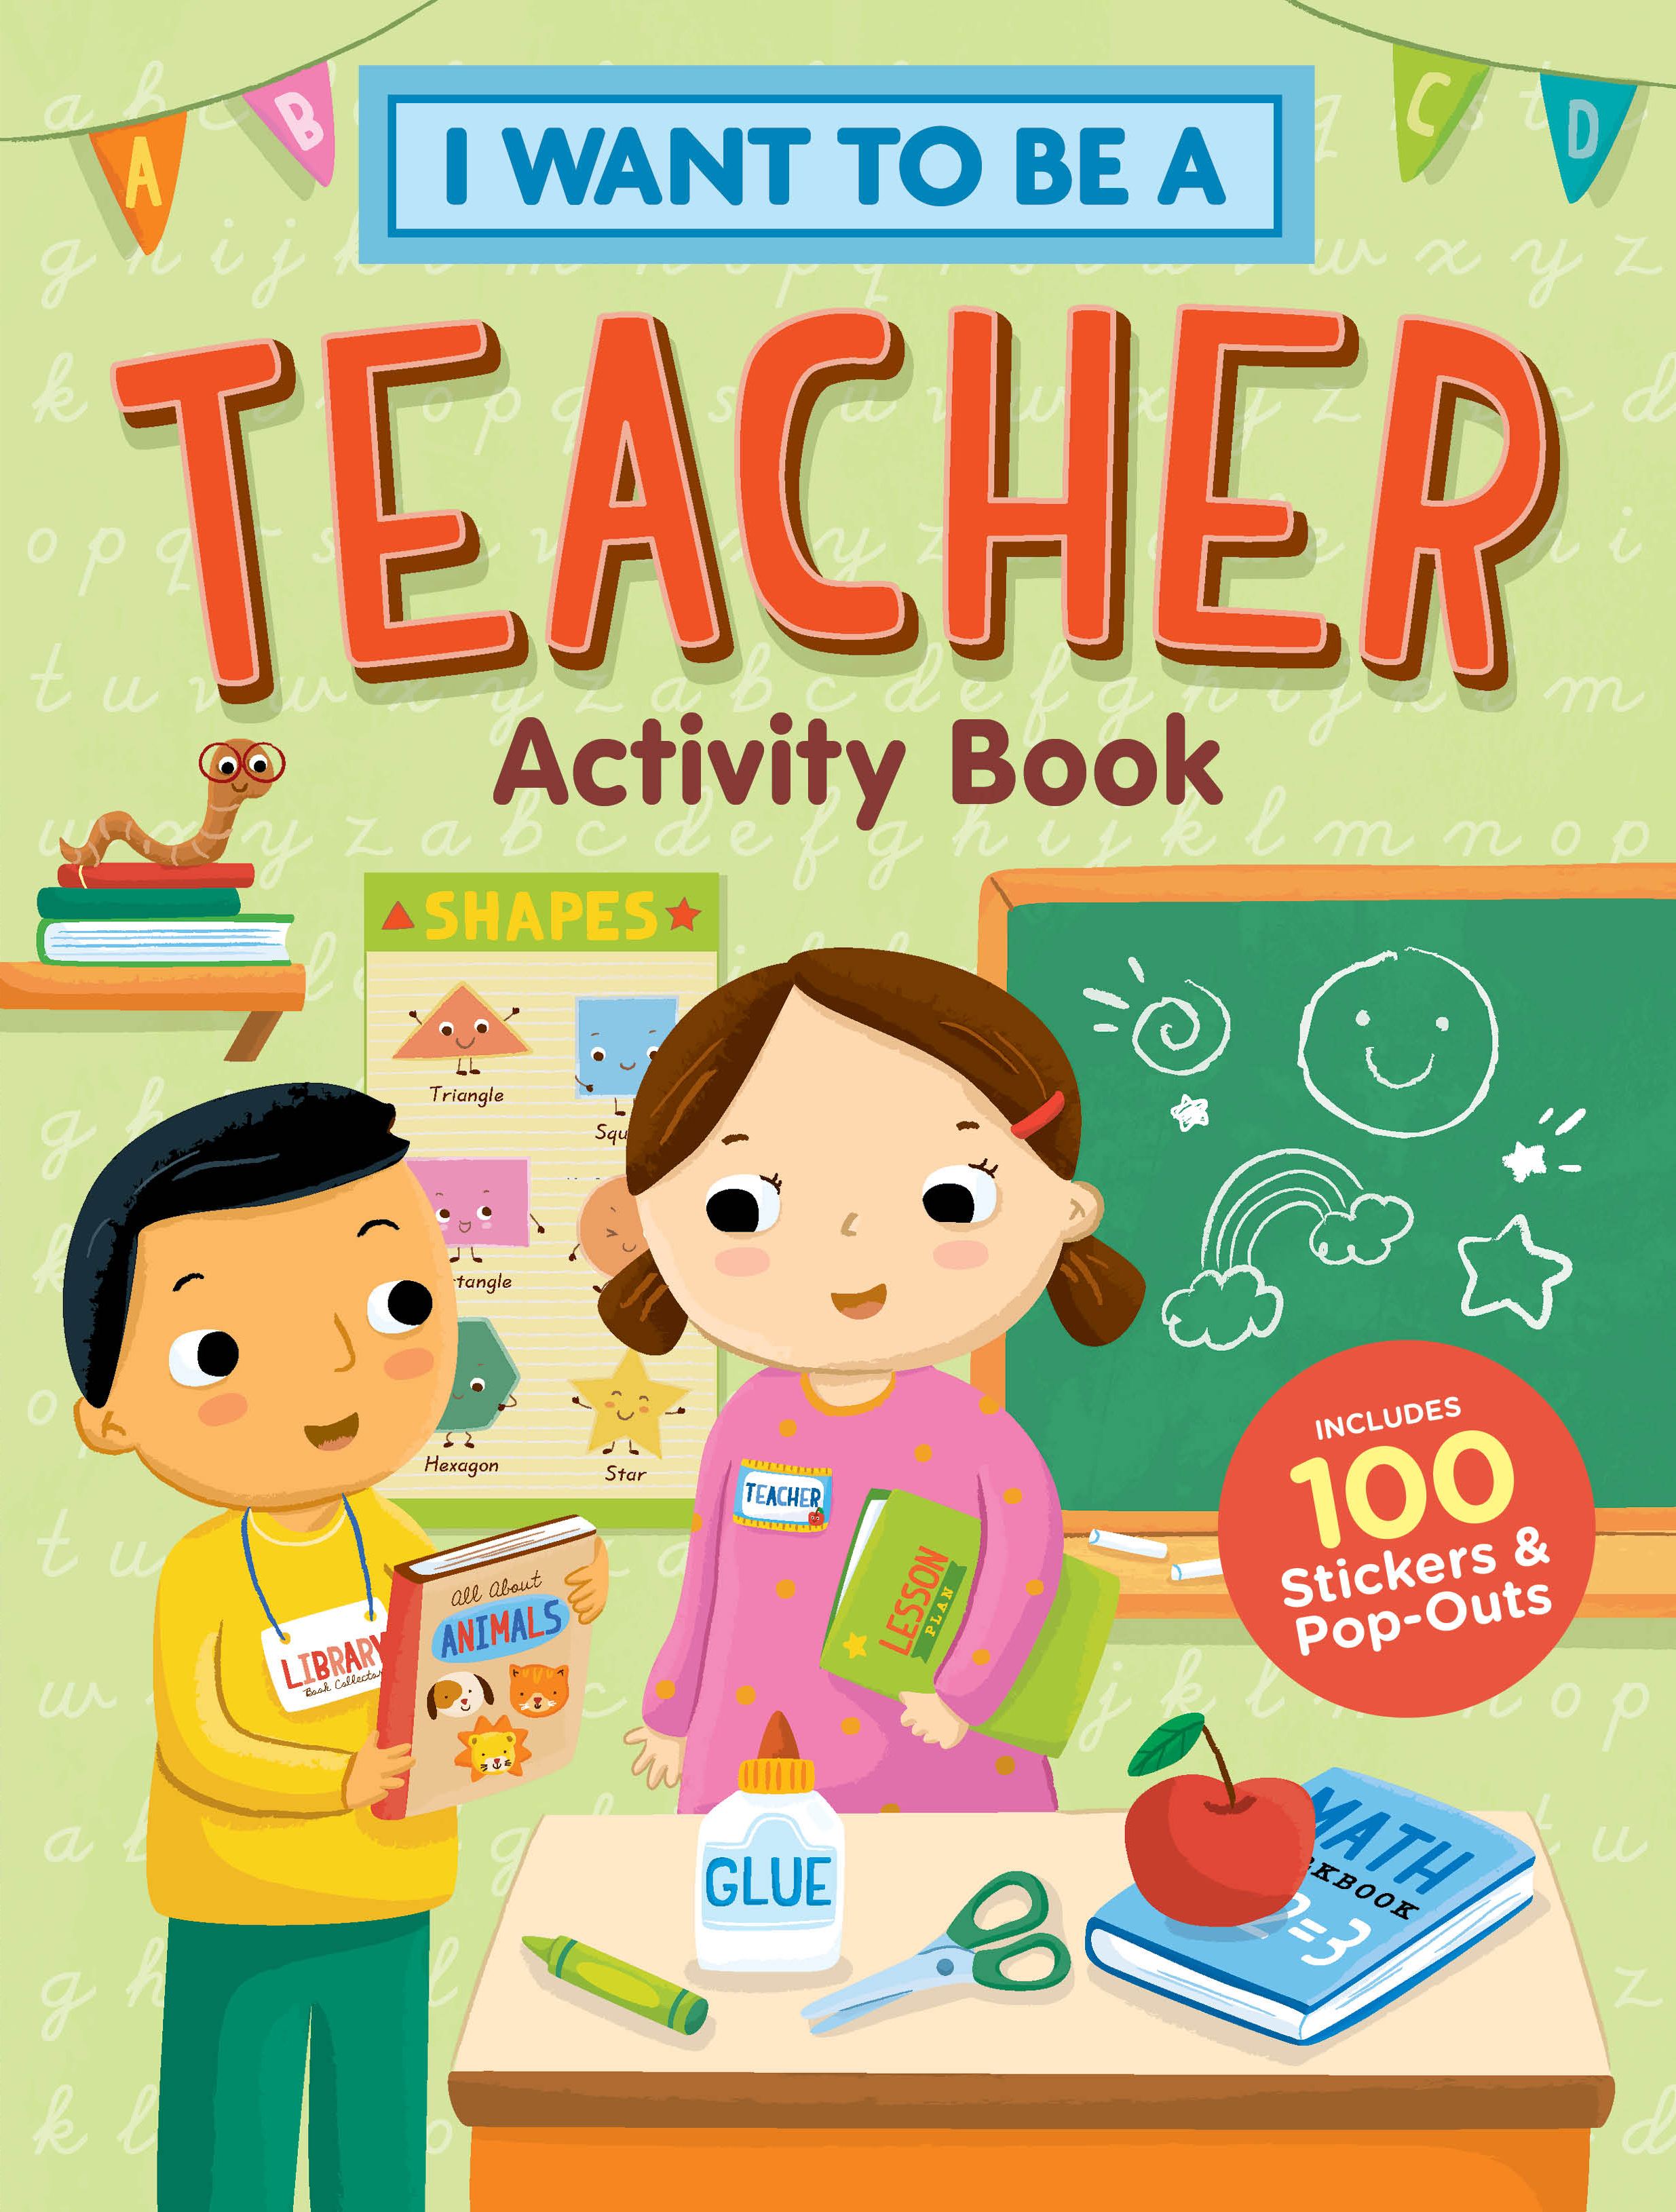 I Want to Be a Teacher Activity Book 100 Stickers & Pop-Outs - Editors of Storey Publishing